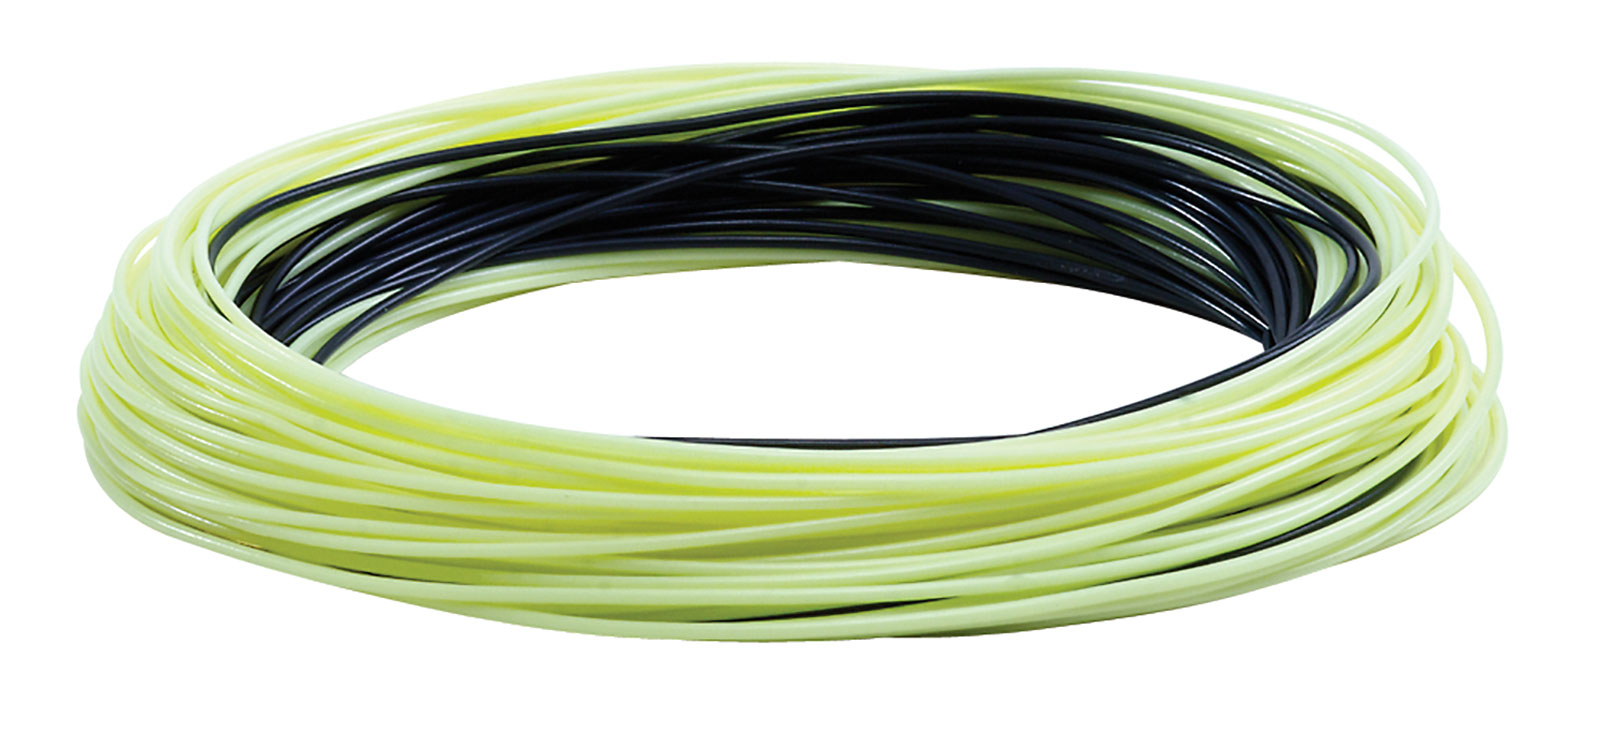 Rio Avid 24ft Sinking Tip Trout Fly Lines 4 7 8 0 Ips Sink